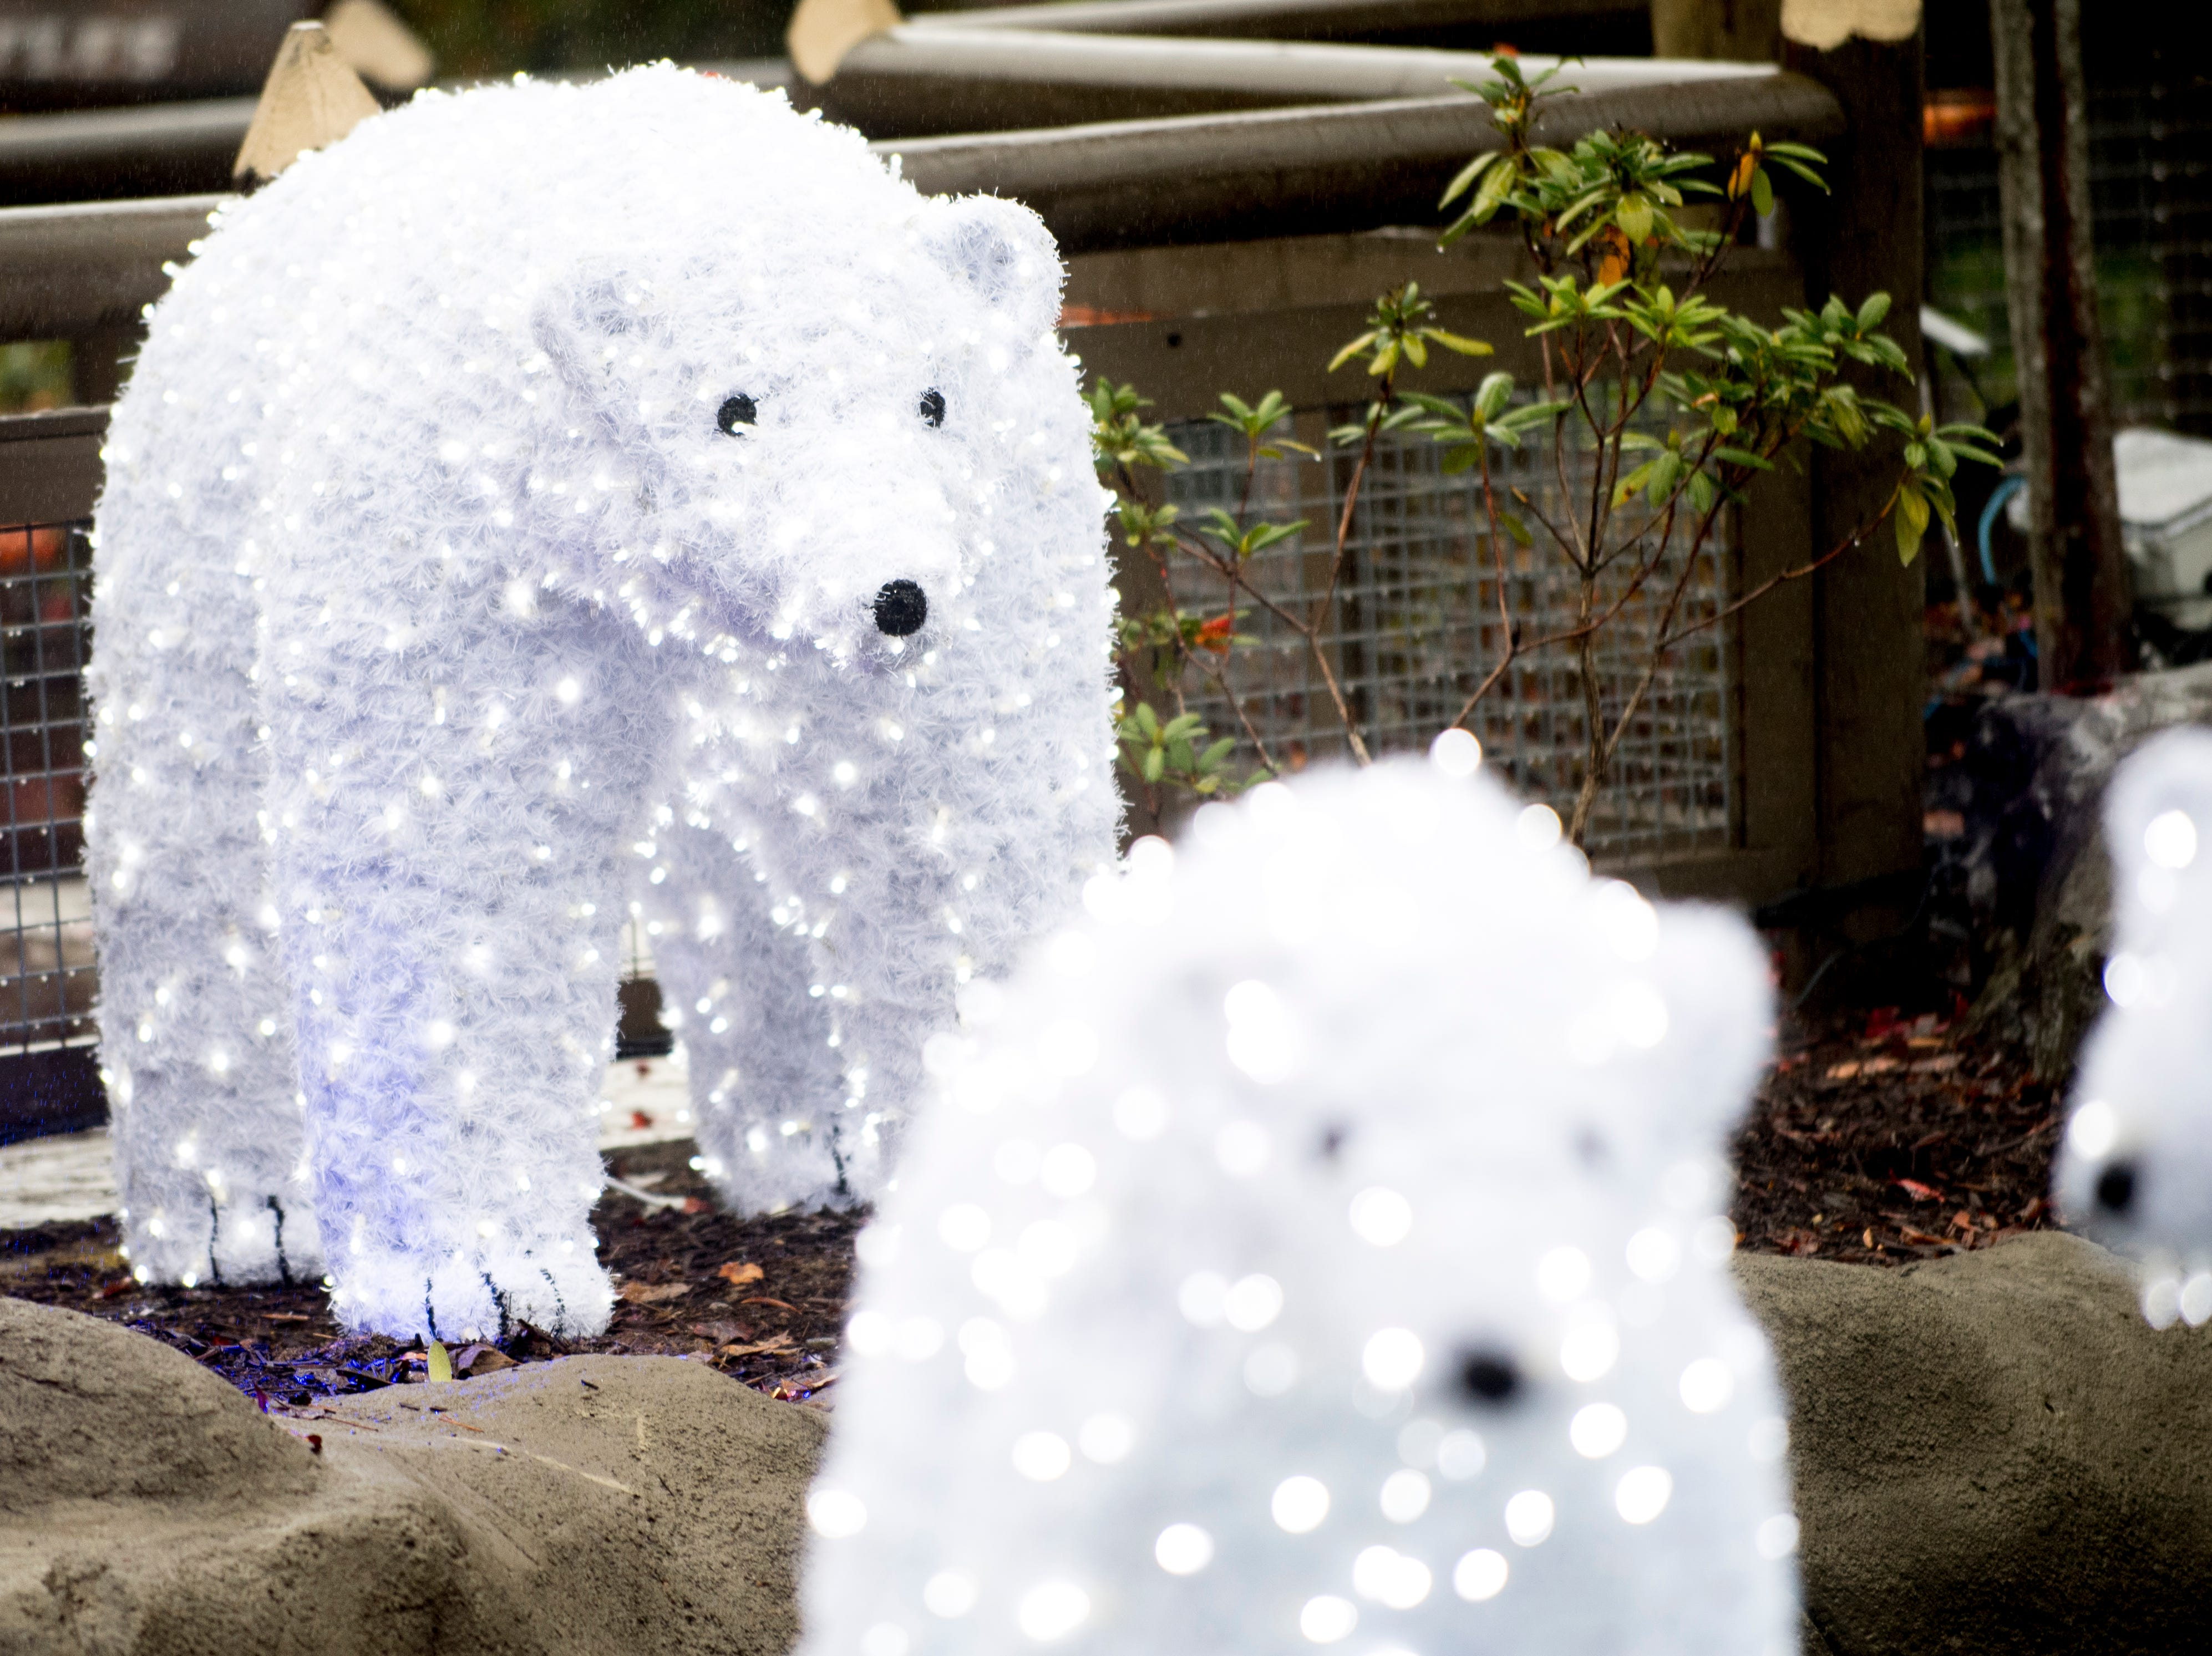 Illuminated polar bears welcome visitors during media day for a behind-the-scenes look of the Glacier Ridge light display at Dollywood in Pigeon Forge, Tennessee on Friday, November 9, 2018. Glacier Ridge features several new lighting displays, including a 50-ft. tall animated tree, the all new Arctic Passage and the Northern Lights.